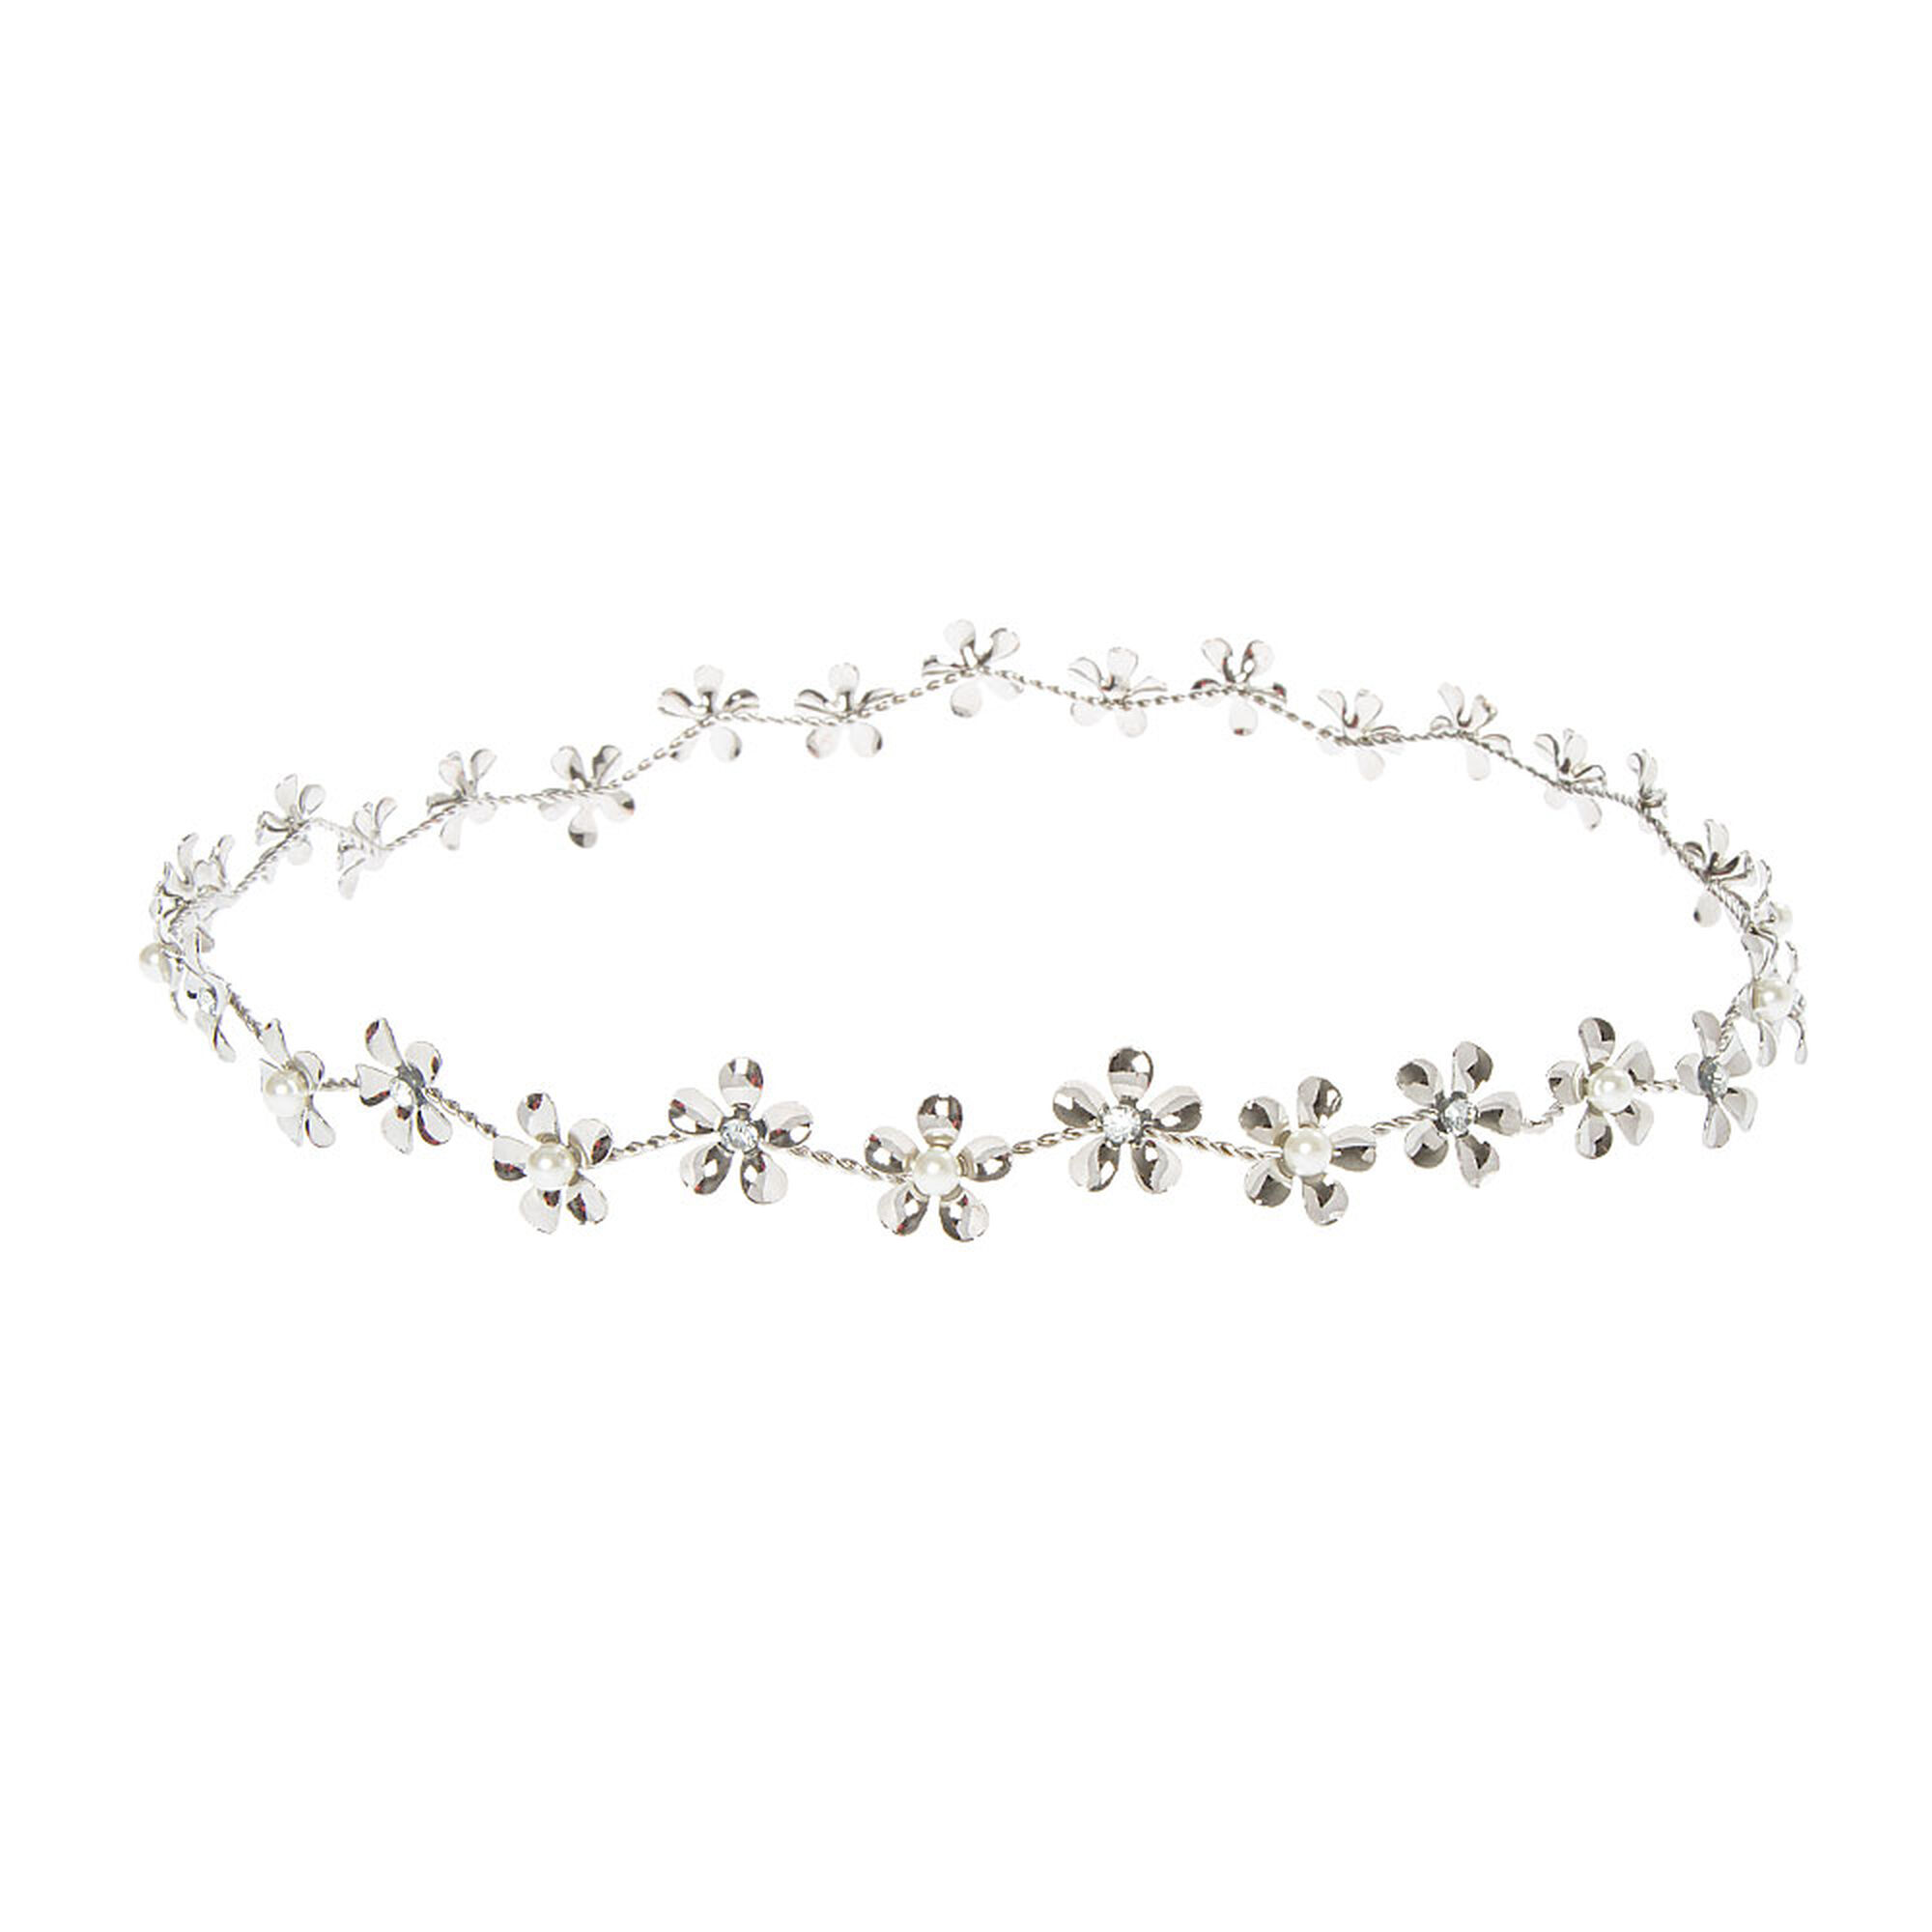 Silver flower crown with pearl crystal centers icing us silver flower crown with pearl crystal centers izmirmasajfo